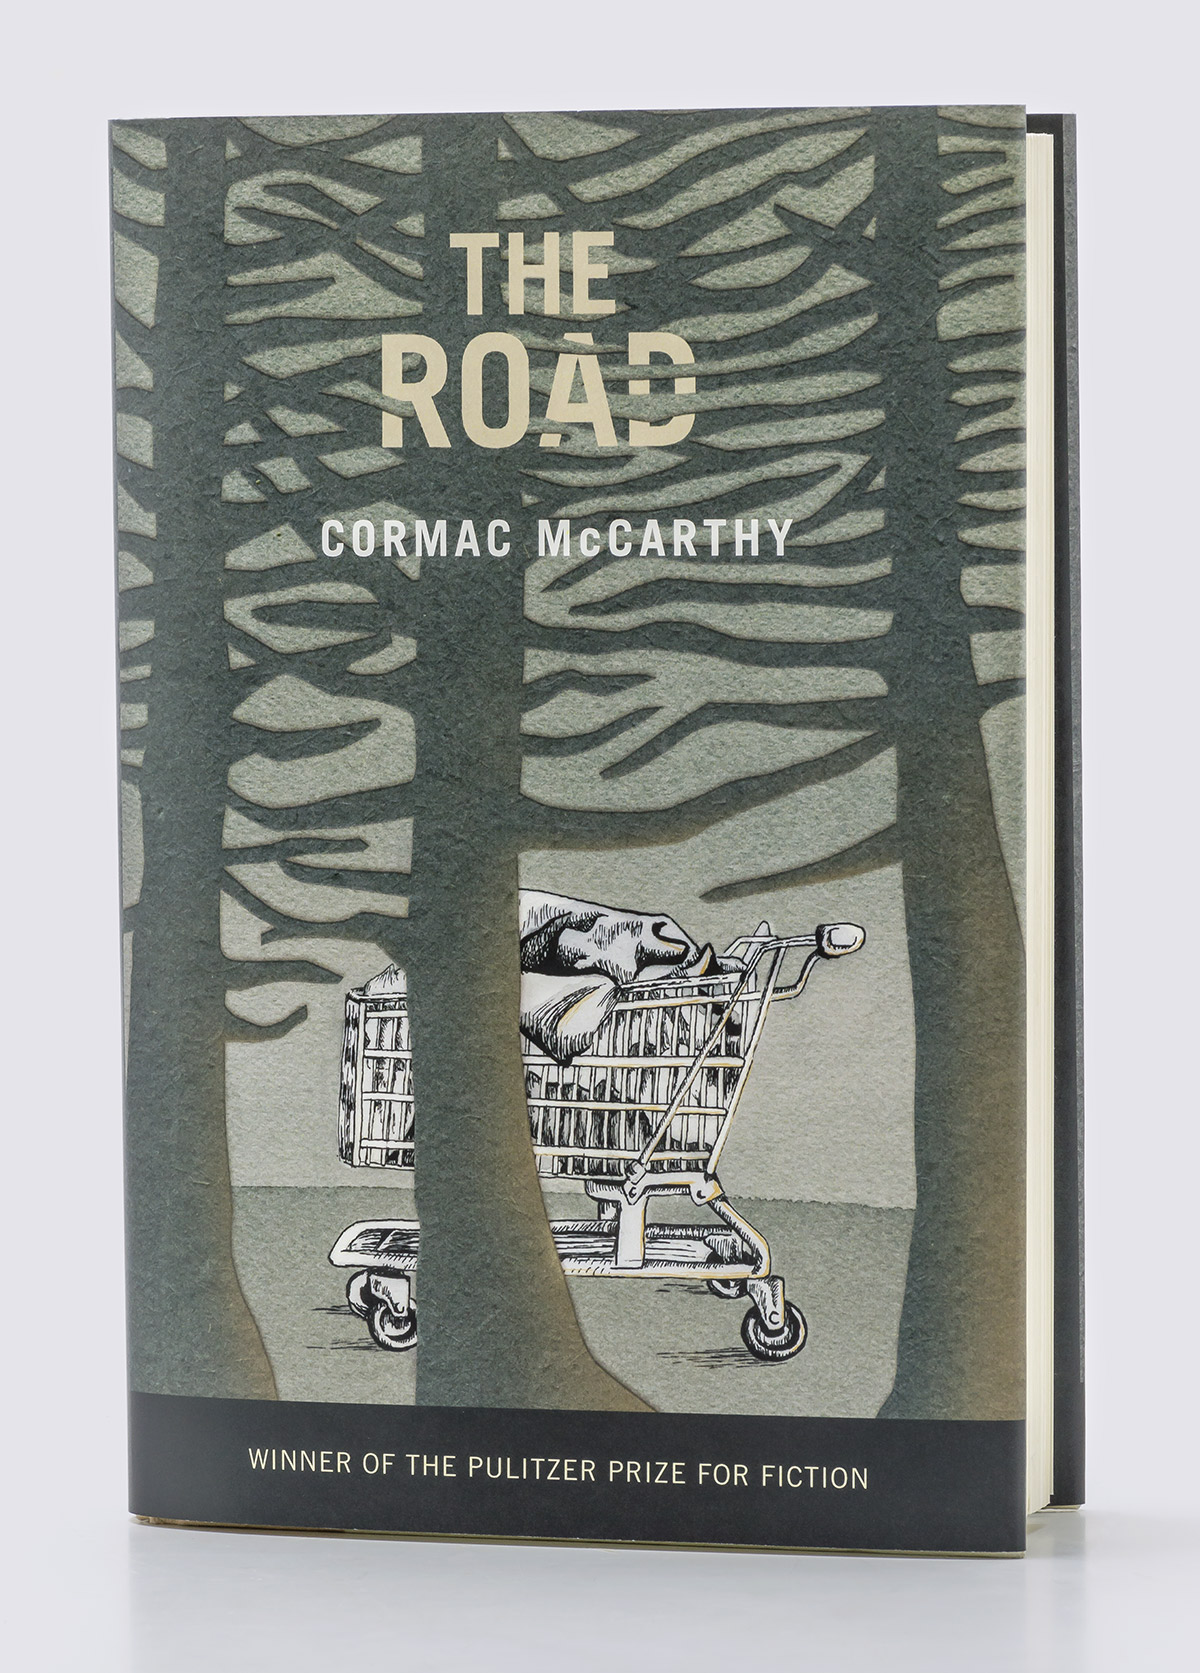 Cormac-Mccarthy-The-Road-book-cover-illustration-and-design-mockup-by-Fiona-Dunnett.jpg